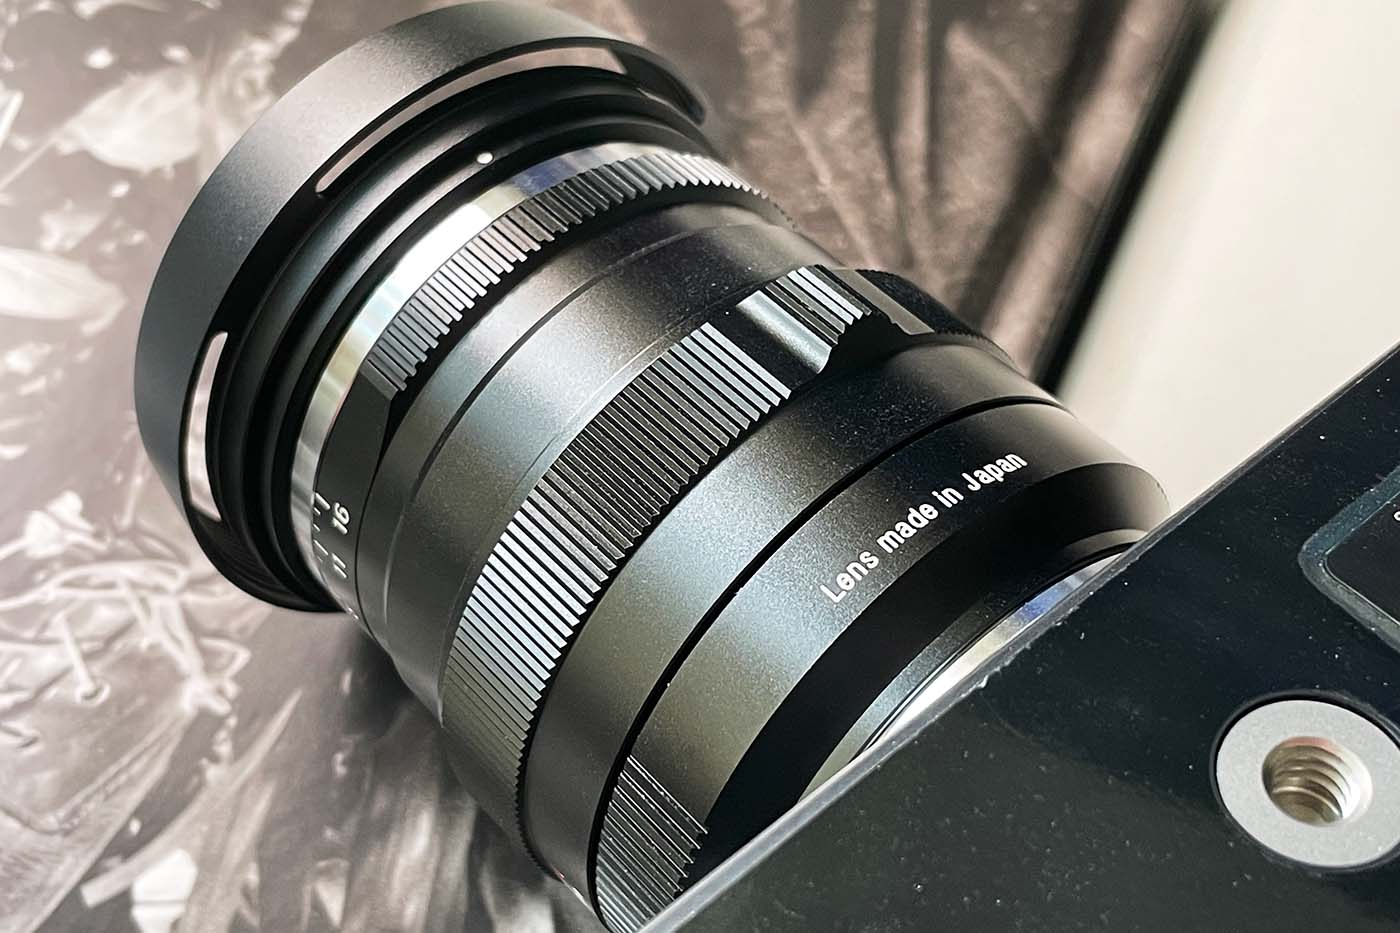 Lens-review-zeiss-distagon-35mm-f1.4-35-1.4-zm-m-mount-leica-wide-angle-street-character-optics-optical-barrel-construct-build-quality-focusing-knob